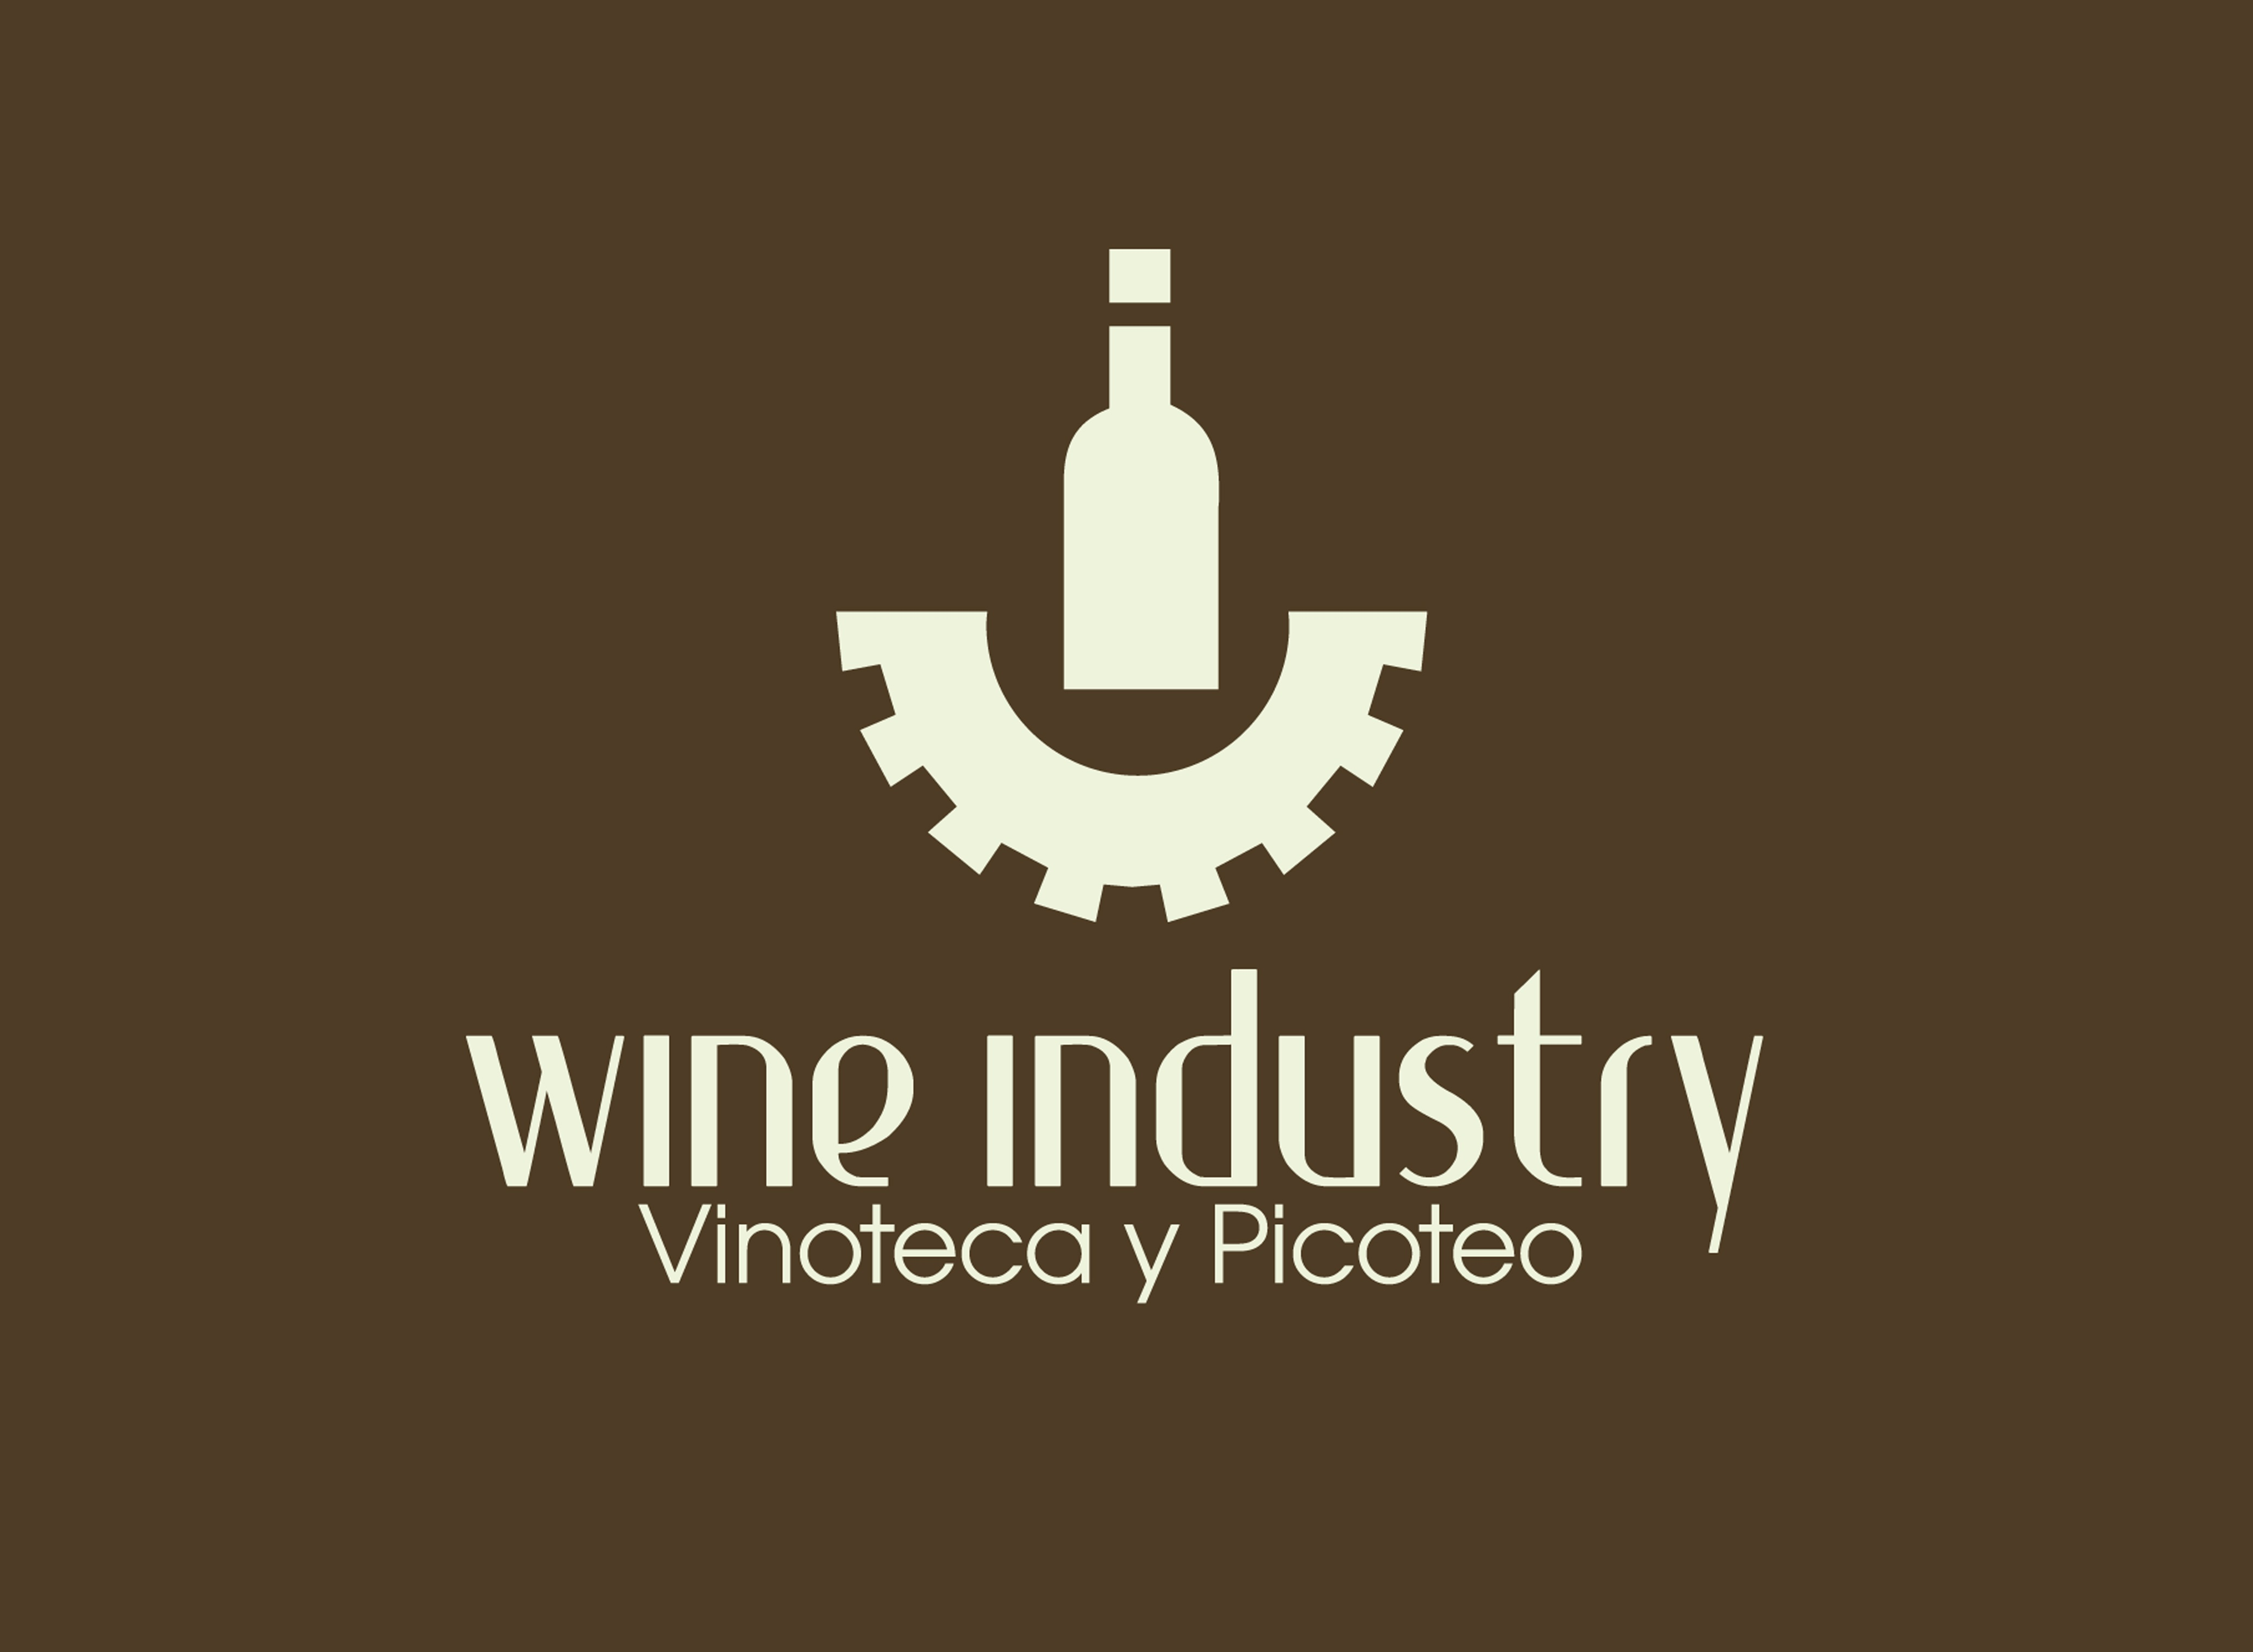 wine_industry logo high res1